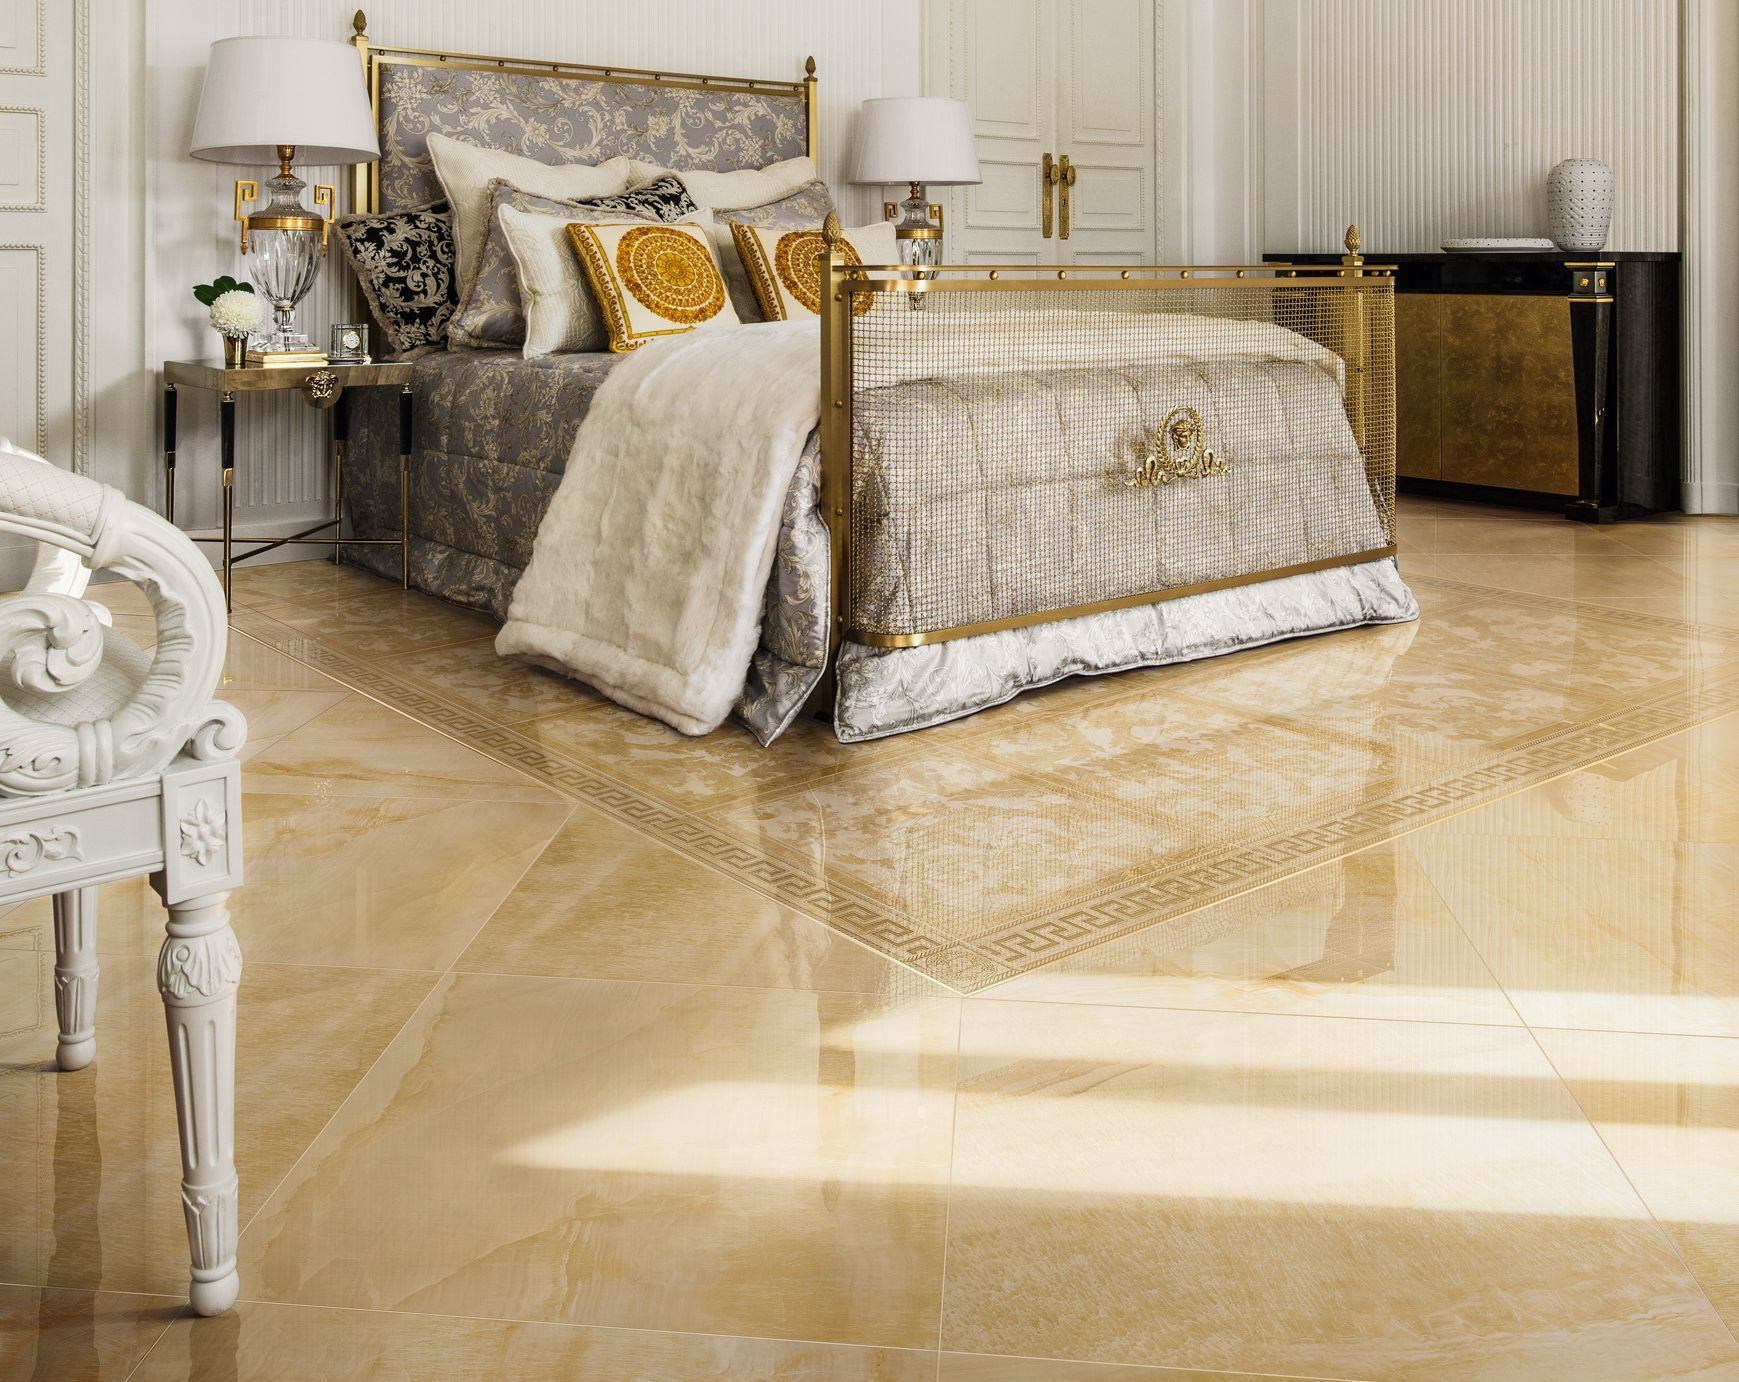 Carrelage Or, Marble   Versace